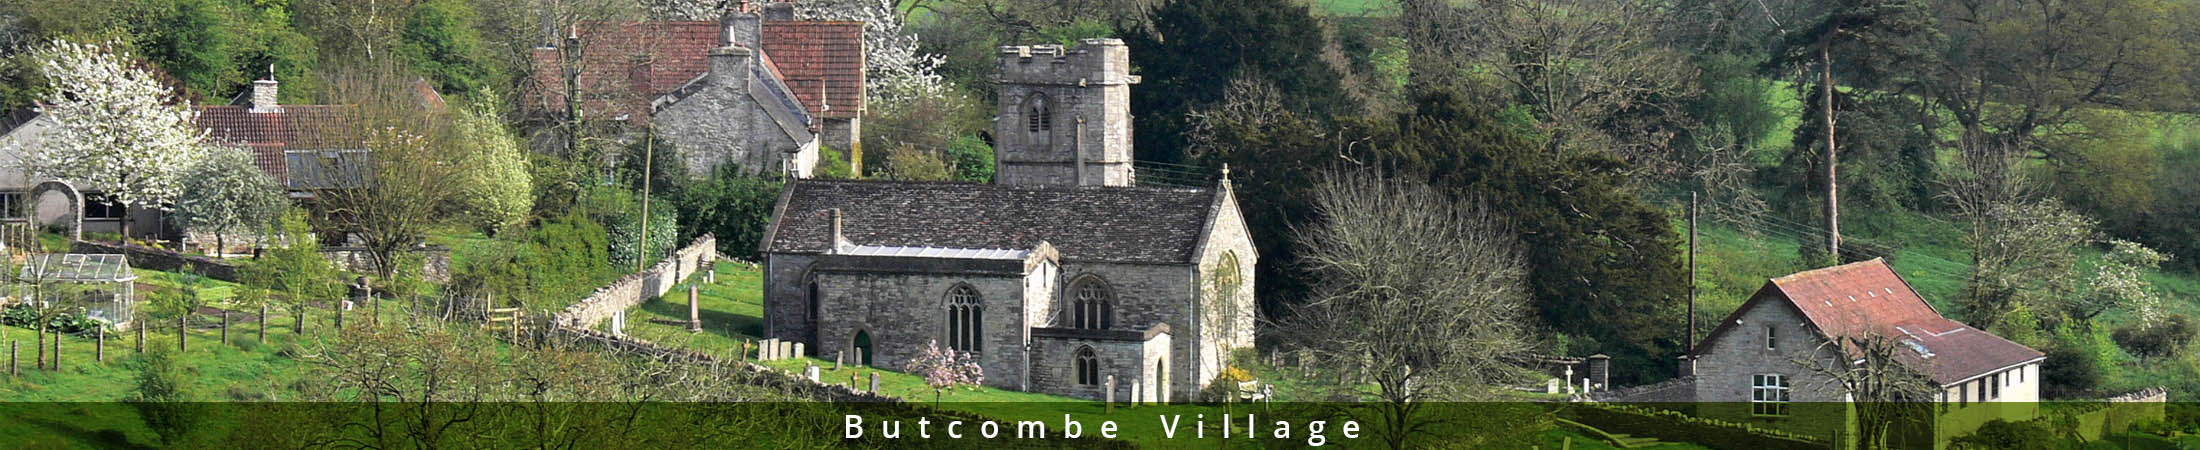 Header Image for Butcombe Parish Council